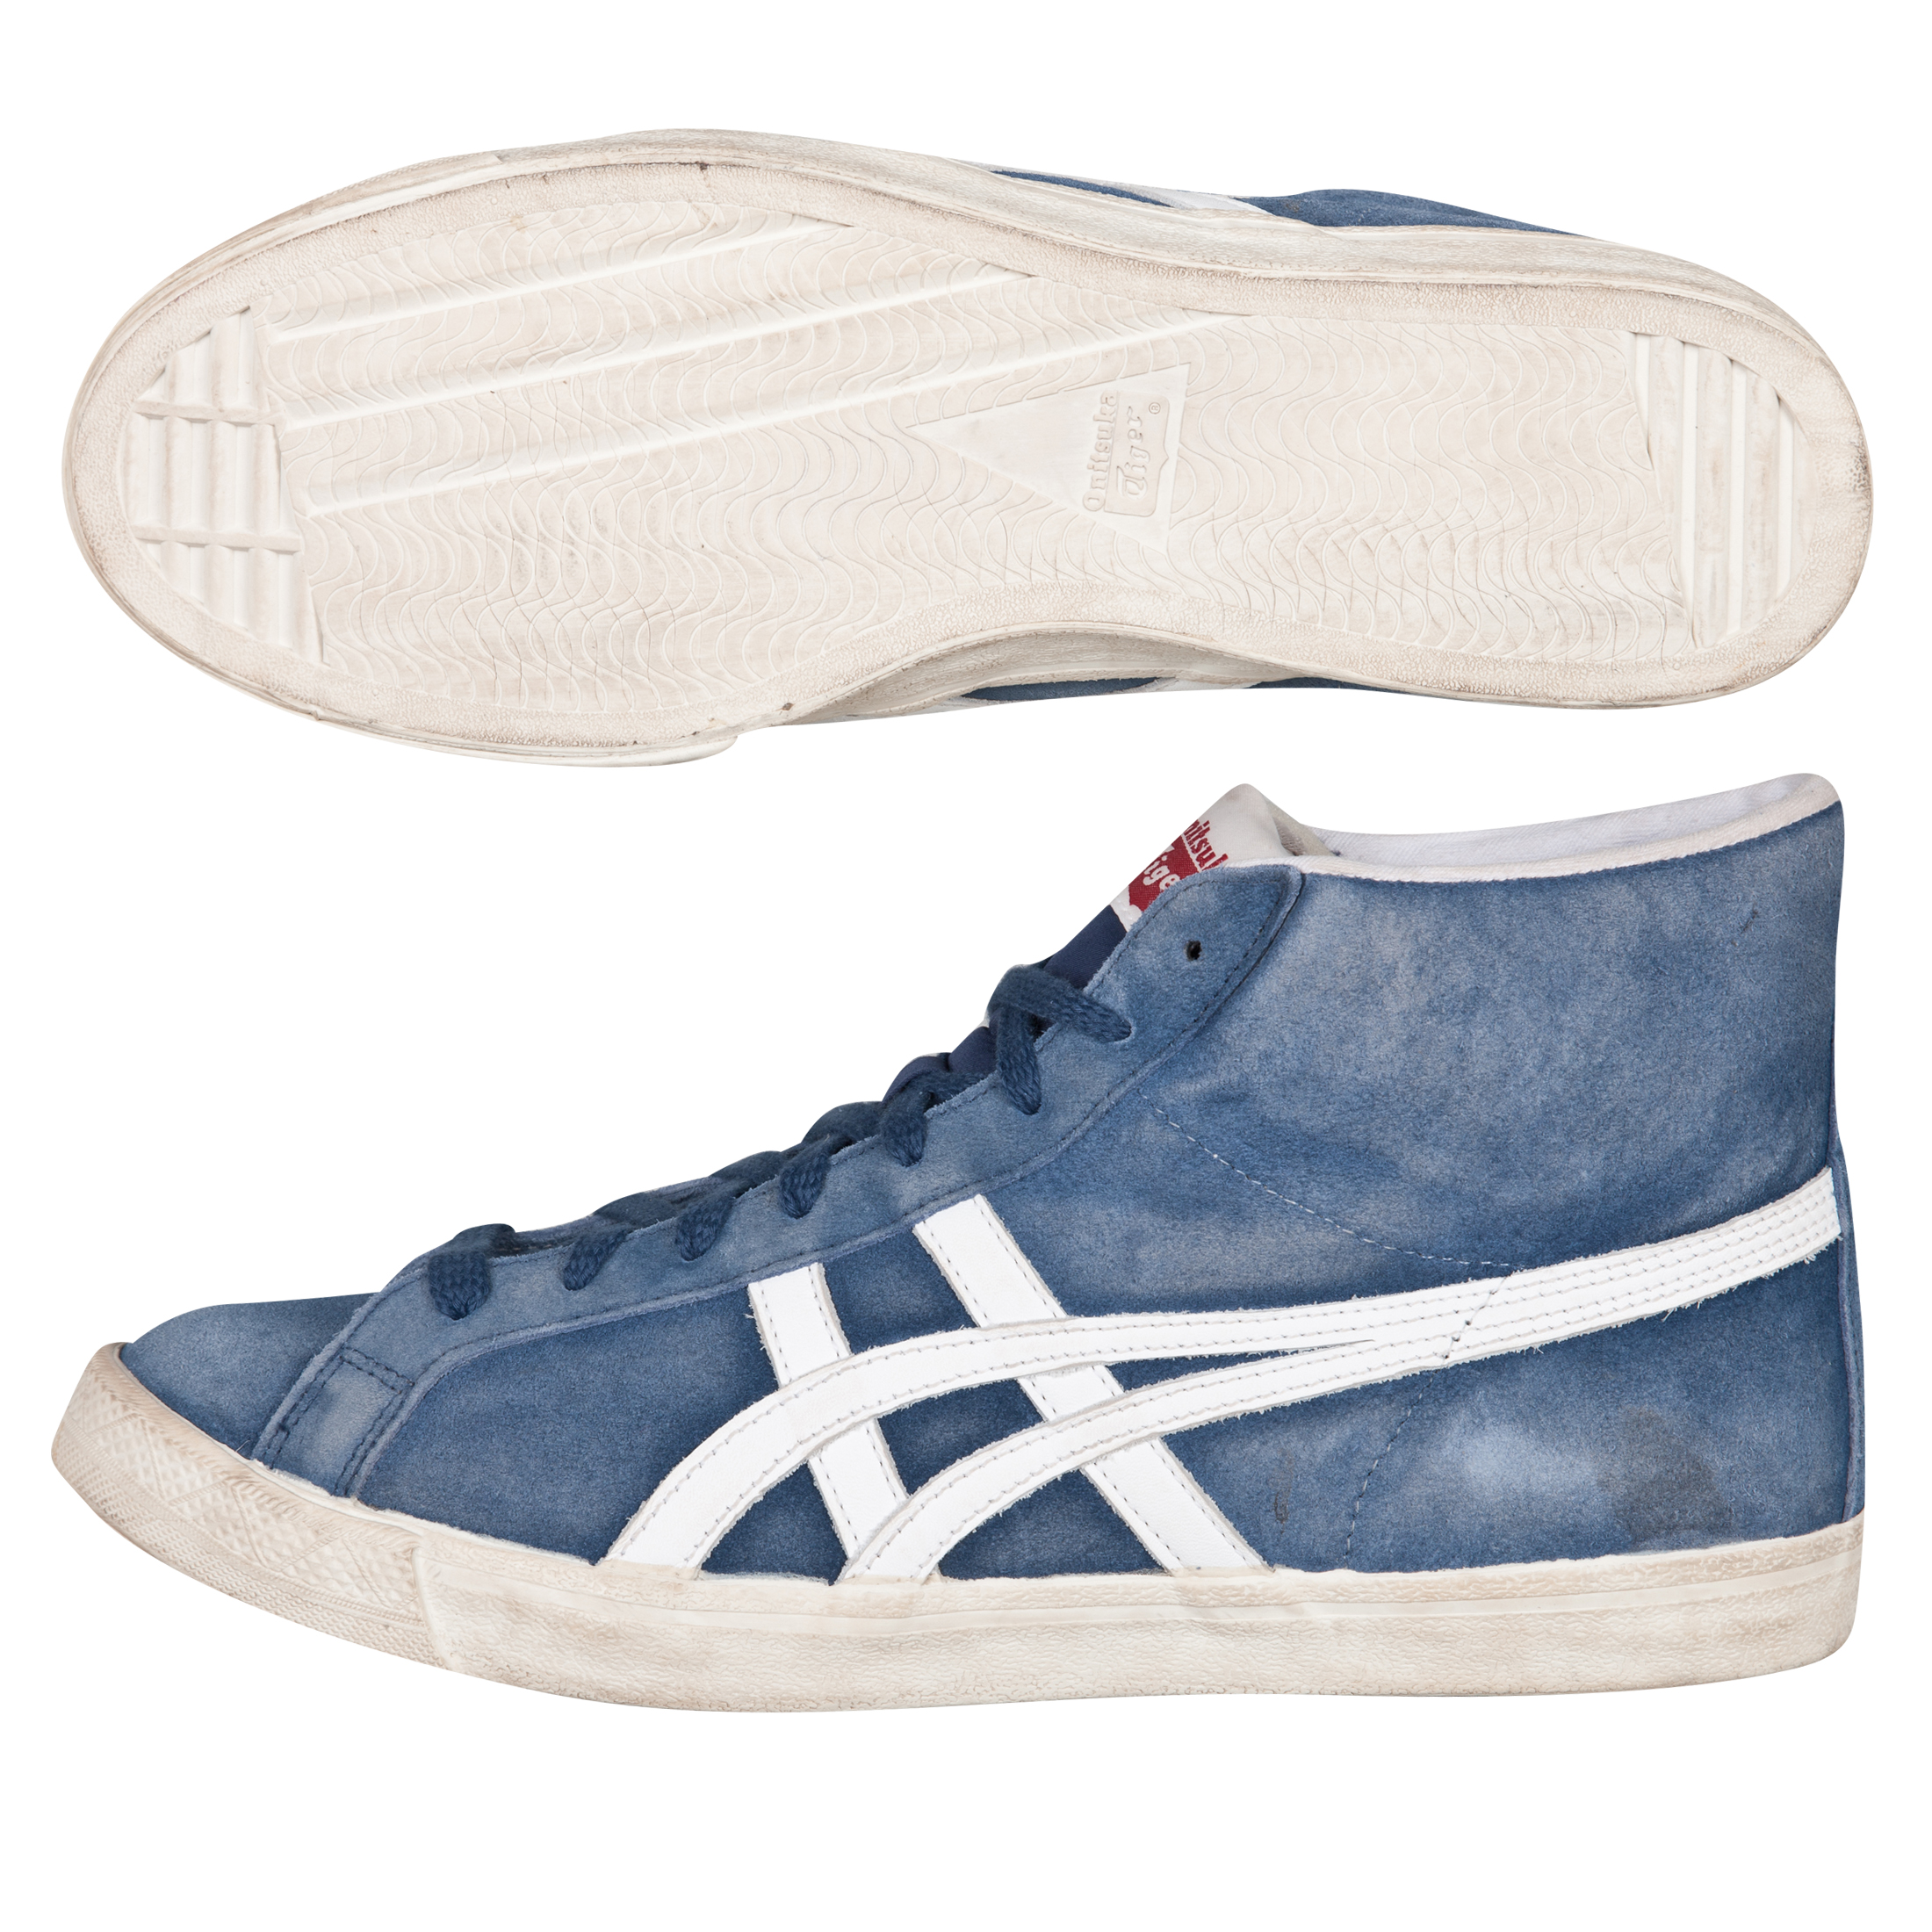 Onitsuka Tiger Fabre BL-L OG Vin Trainers - Insignia Blue/White